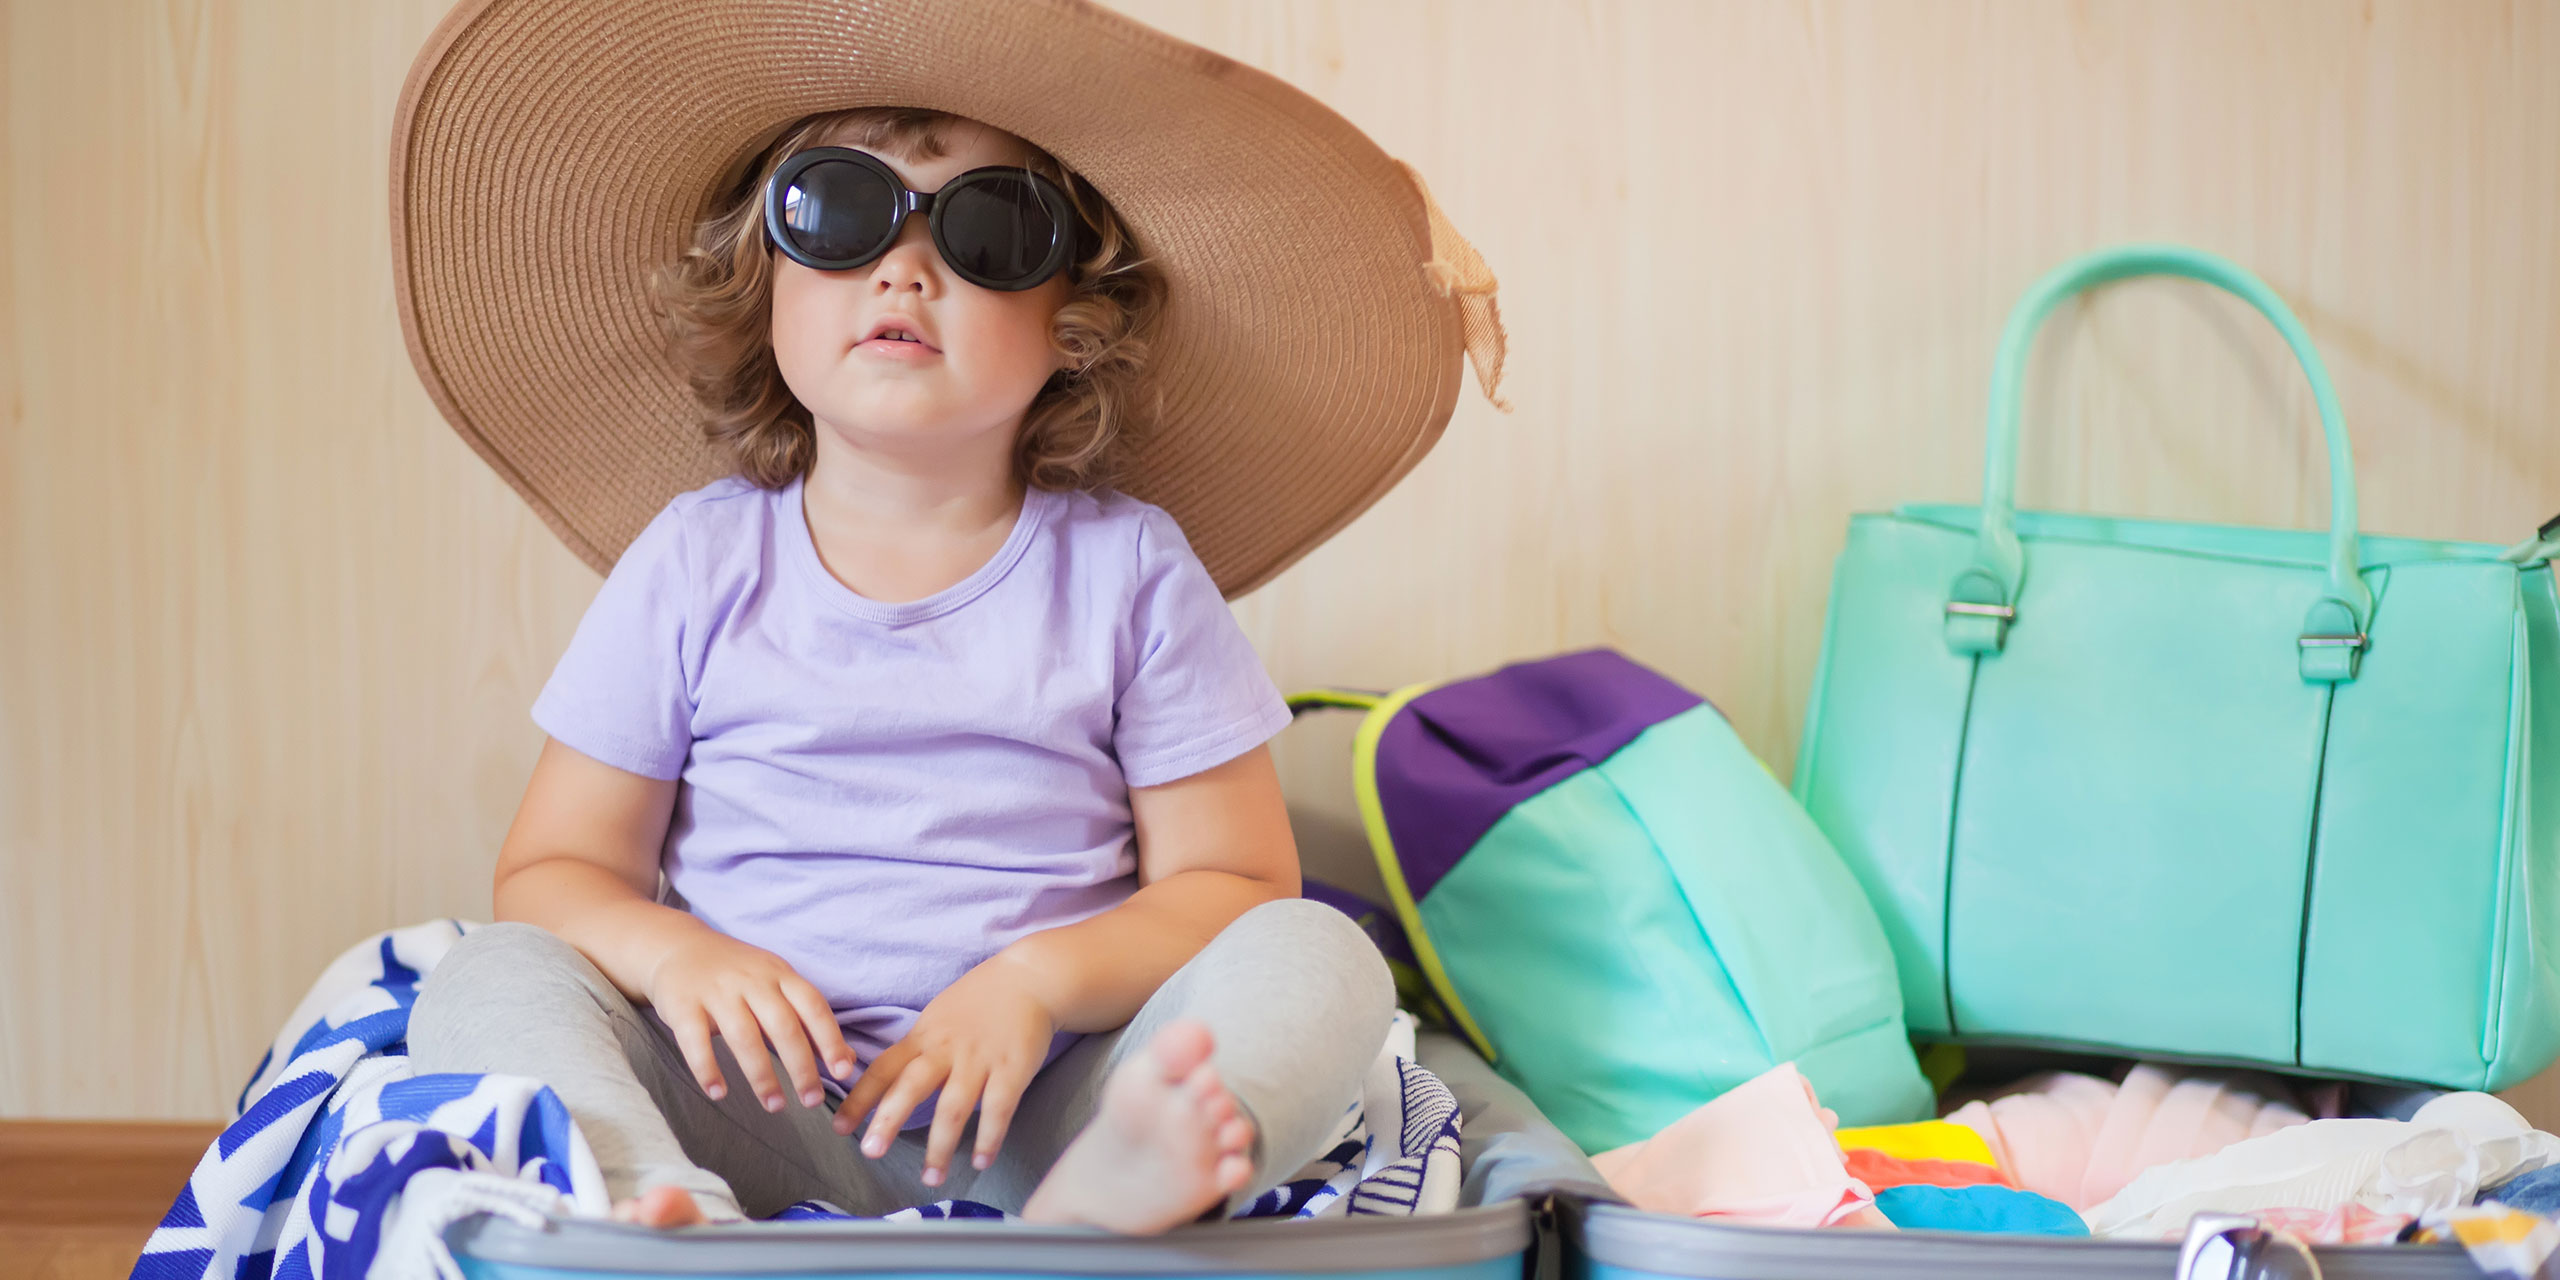 Toddler Girl in Suitcase; Courtesy of Alina Demidenko/Shutterstock.com